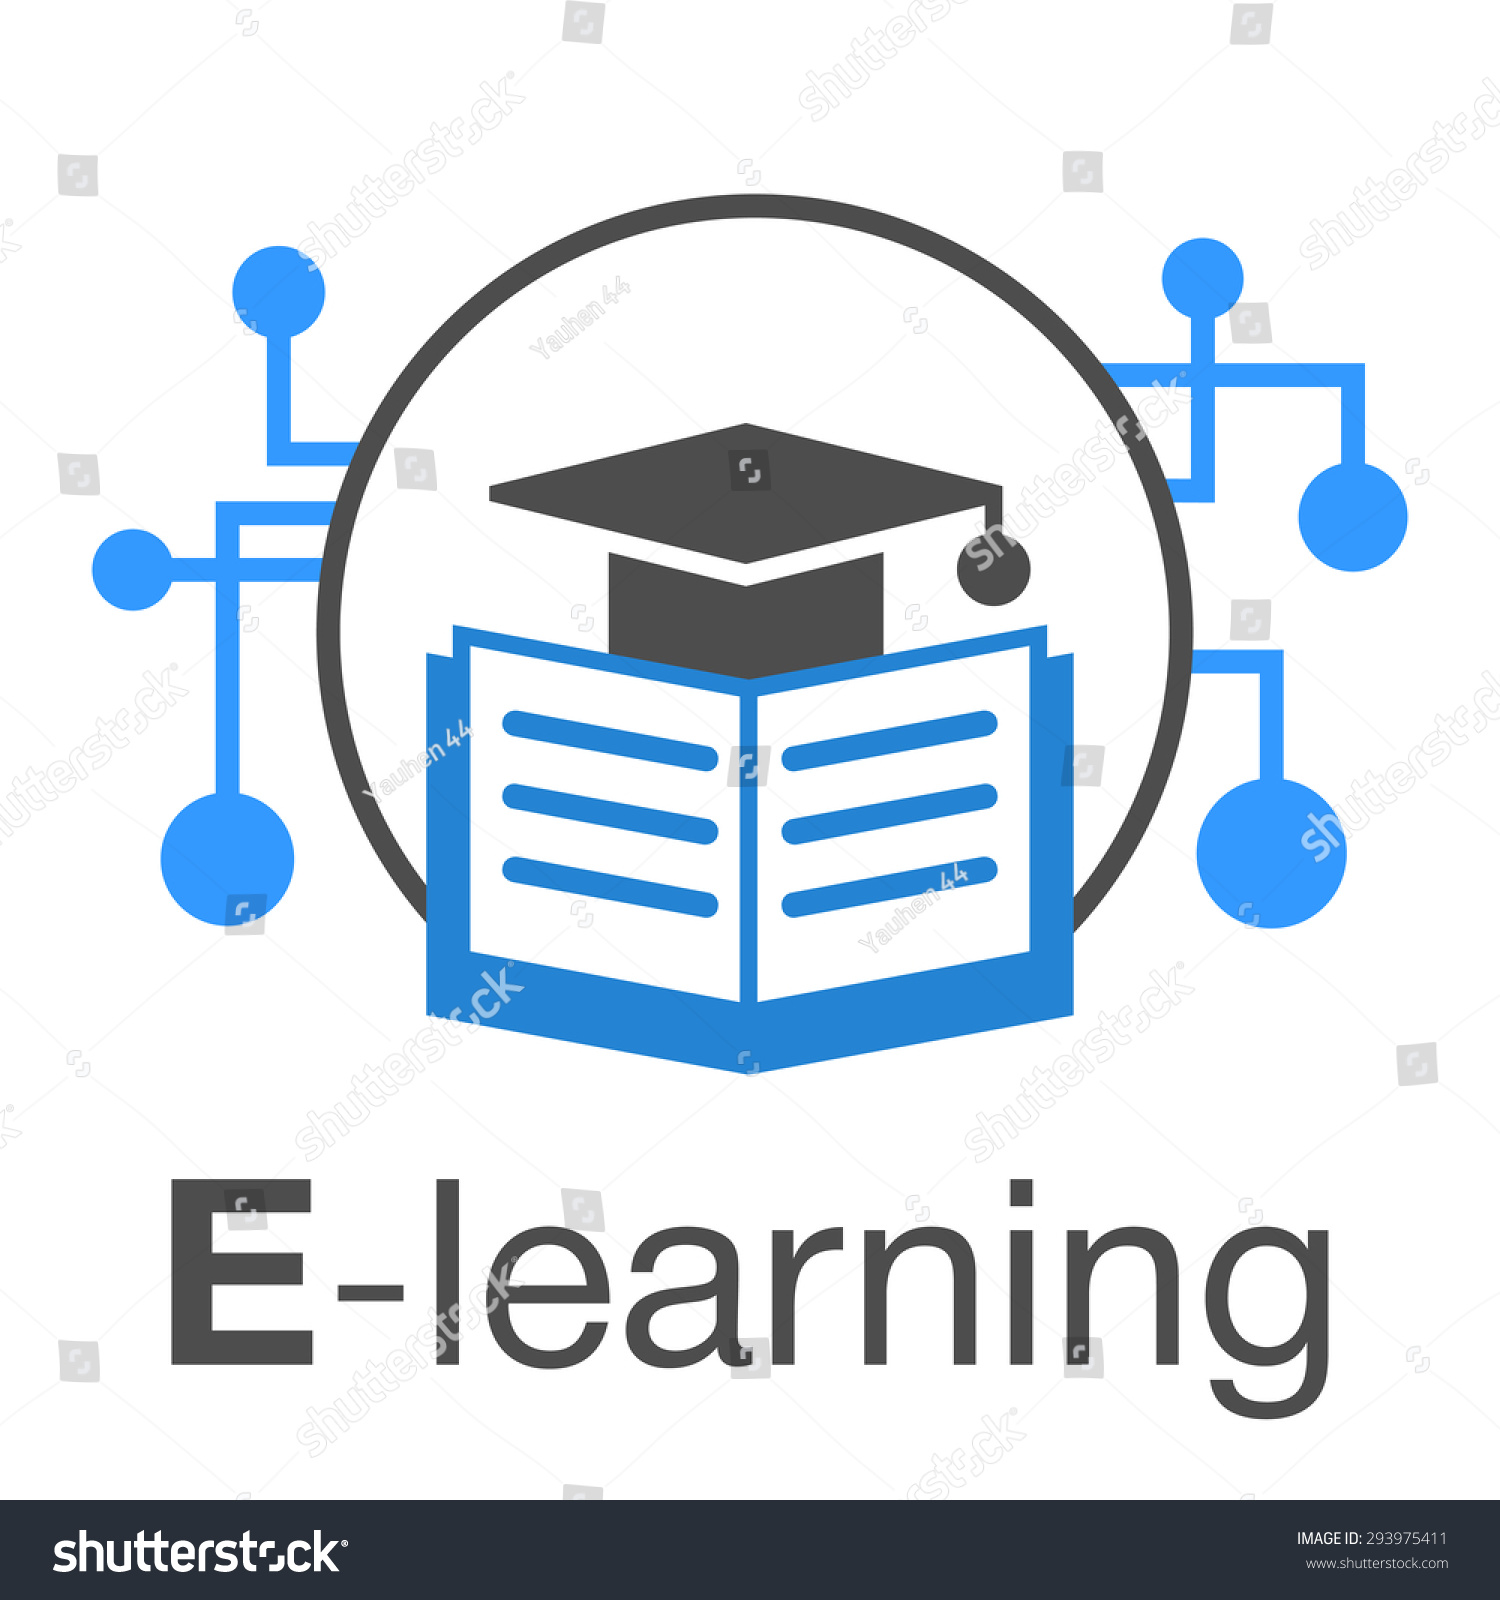 Elearning education internet icon stock vector 293975411 e learning education internet icon biocorpaavc